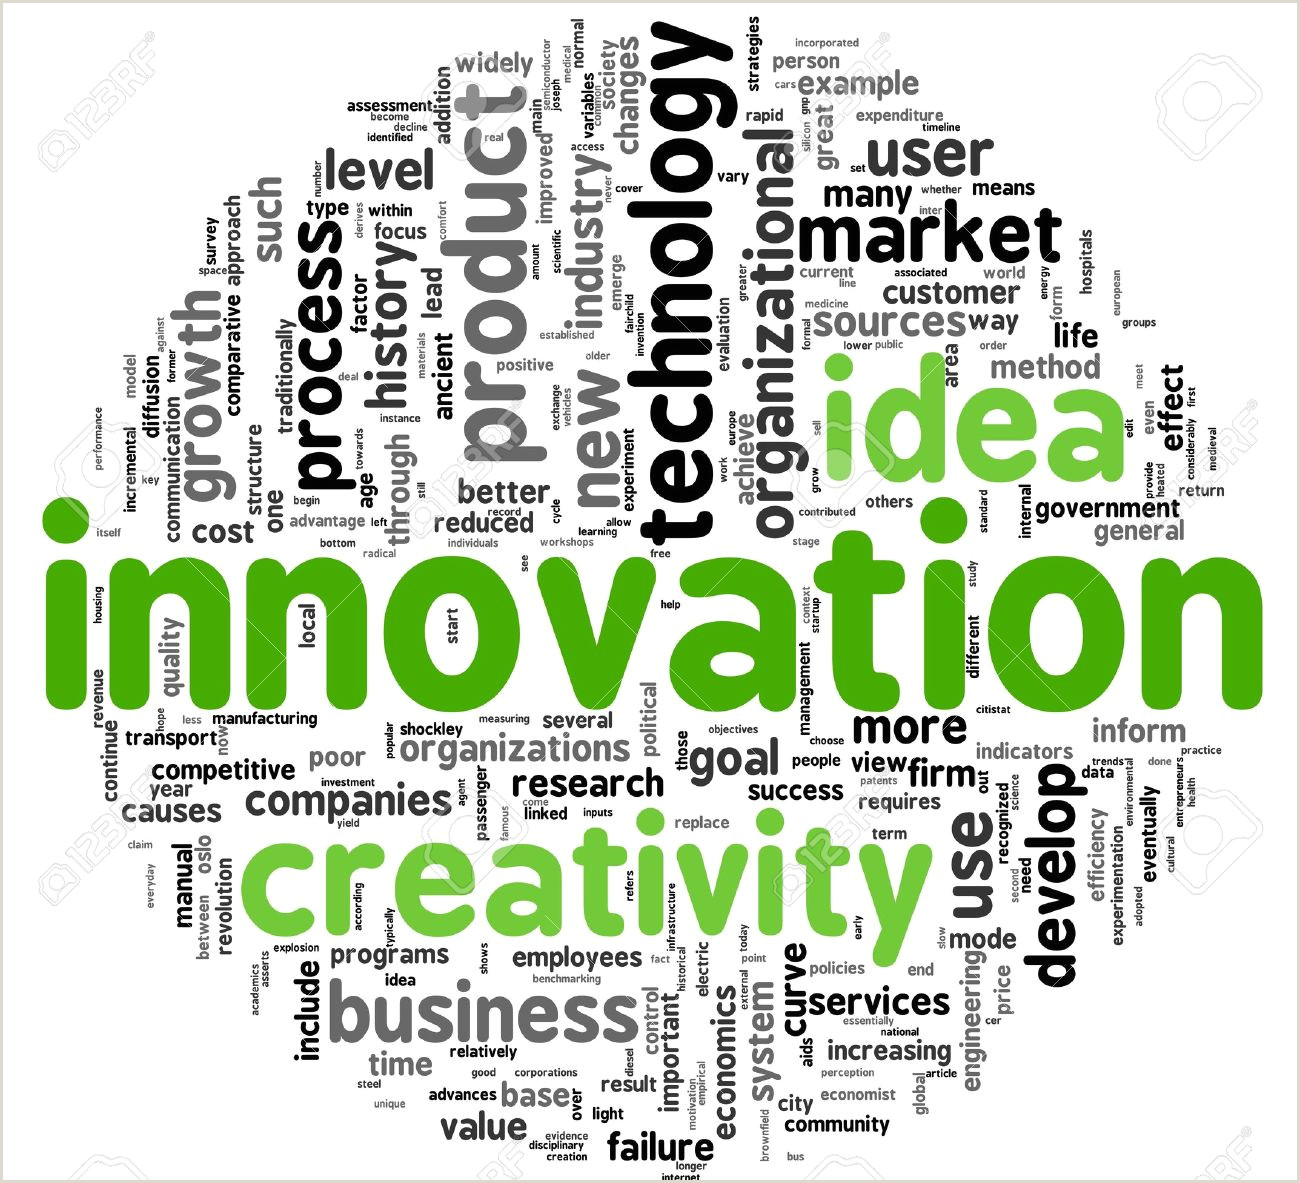 Words Related To Creativity And Design Innovation And Creativity Concept Words In Tag Cloud